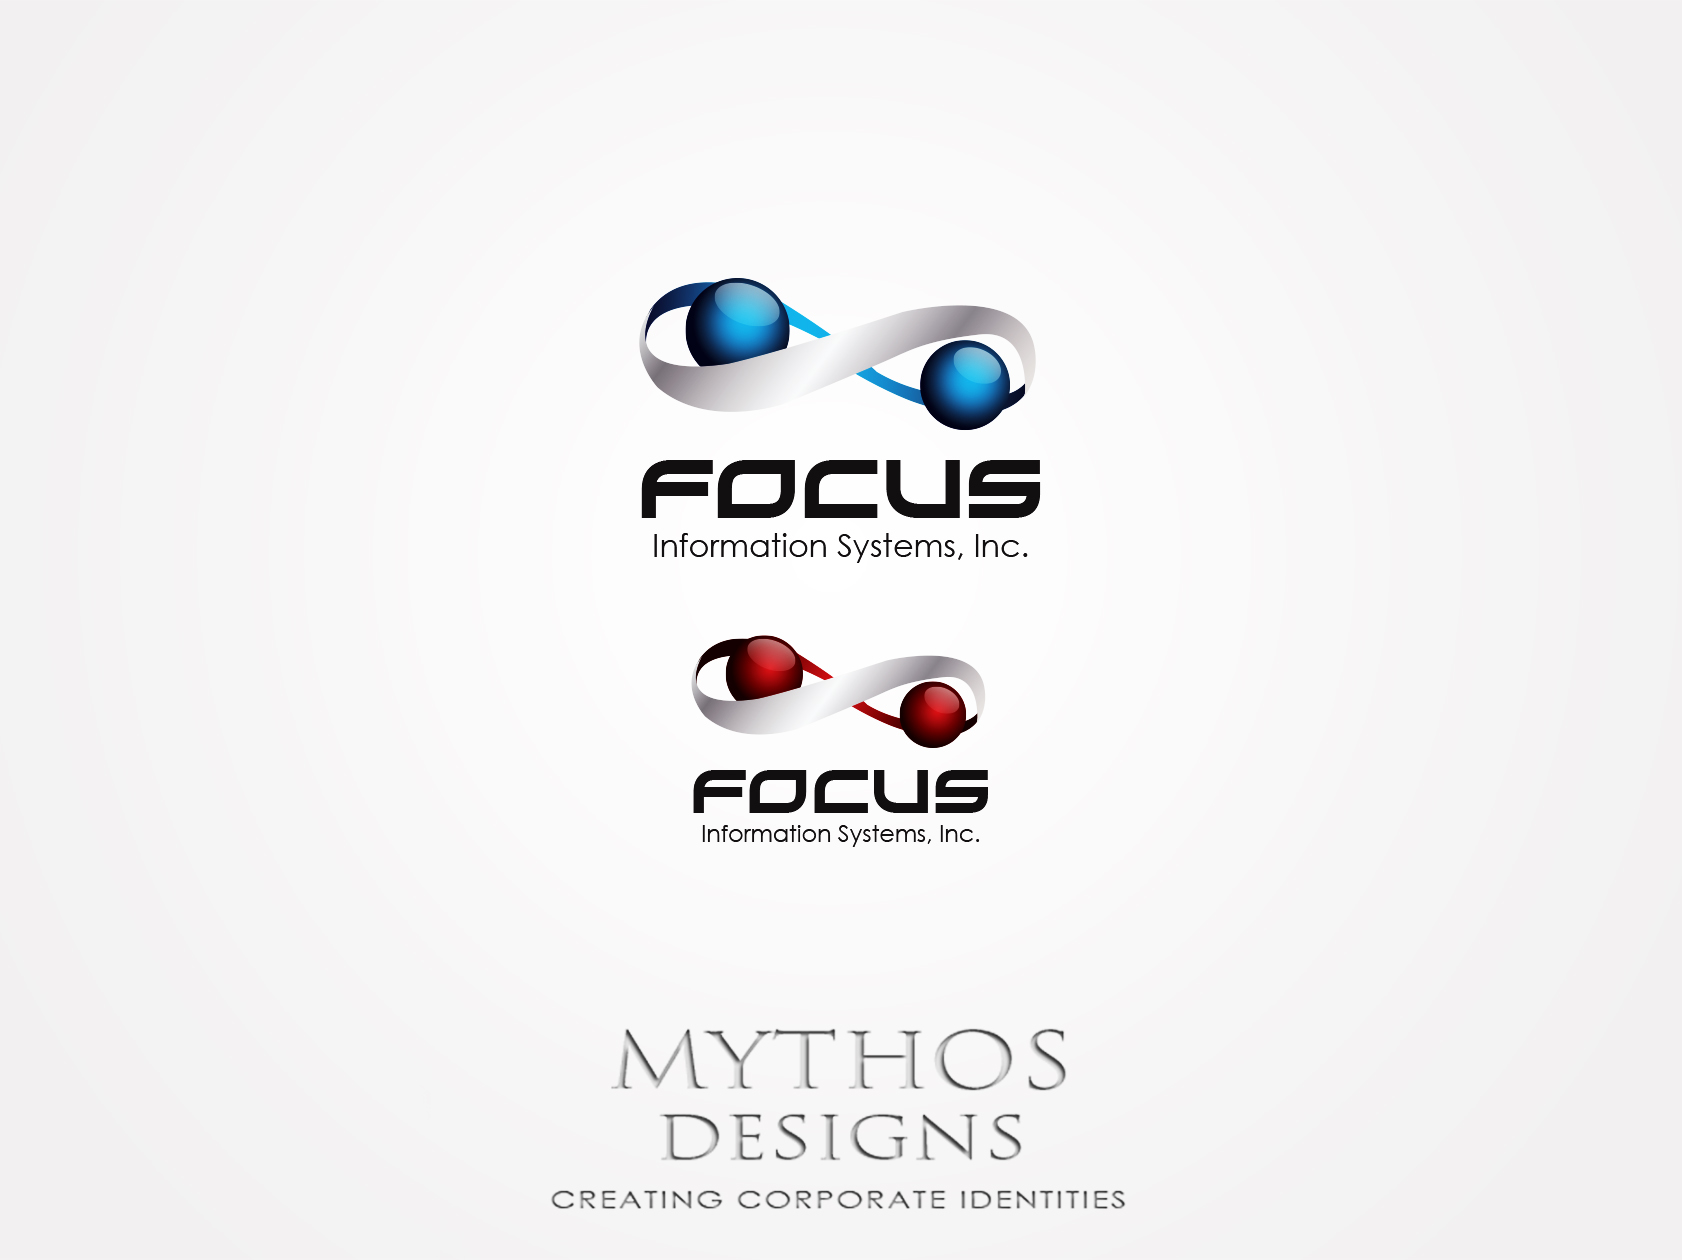 Logo Design by Mythos Designs - Entry No. 54 in the Logo Design Contest Artistic Logo Design for Focus Information Systems, Inc..